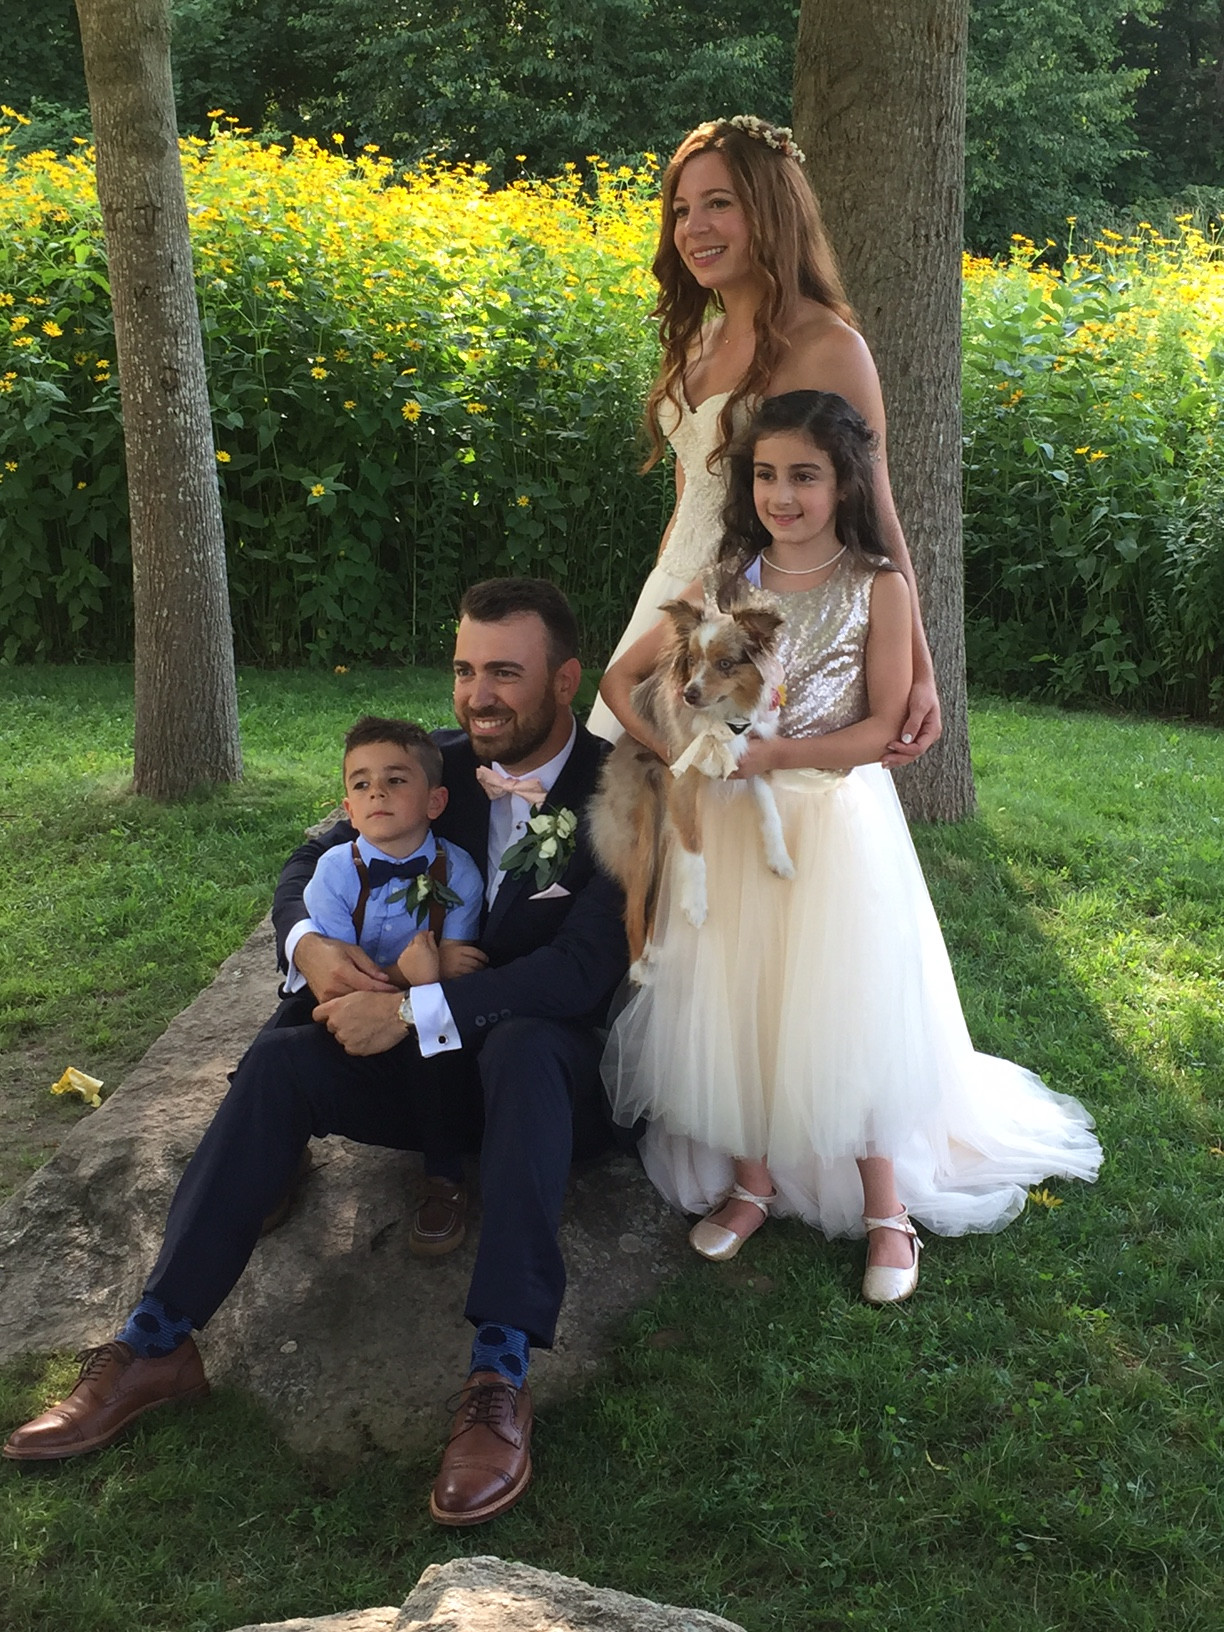 Newlyweds Andrea Swift Argyros and John Argyros last week with their flower girl, ring bearer and dog, Mila.